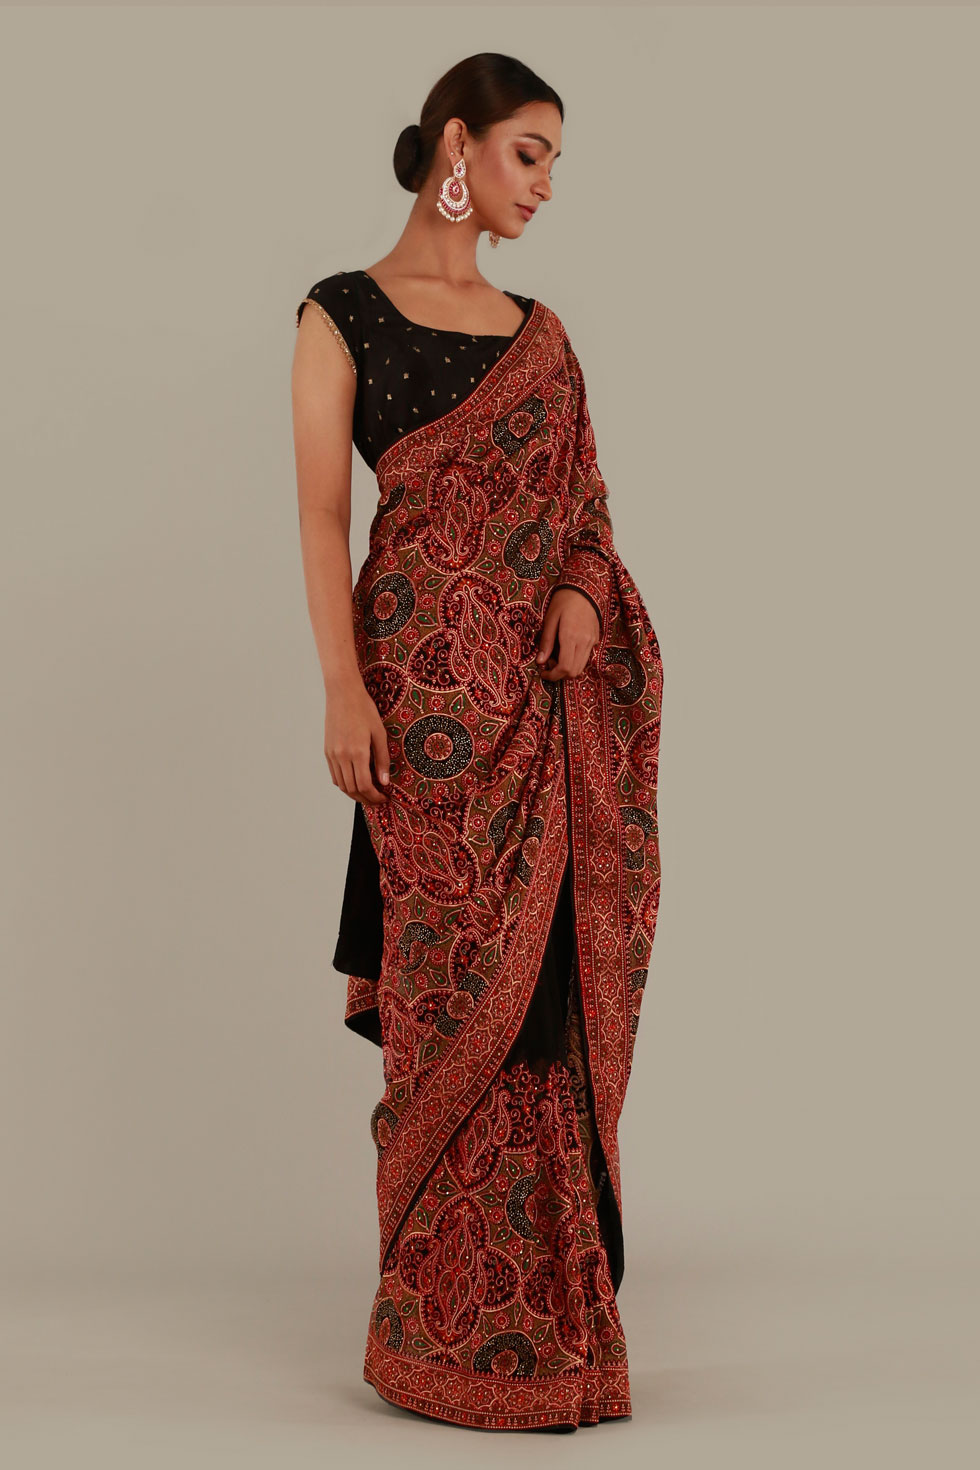 Raven black saree with contrast multi coloured thread work and matching blouse with gold details